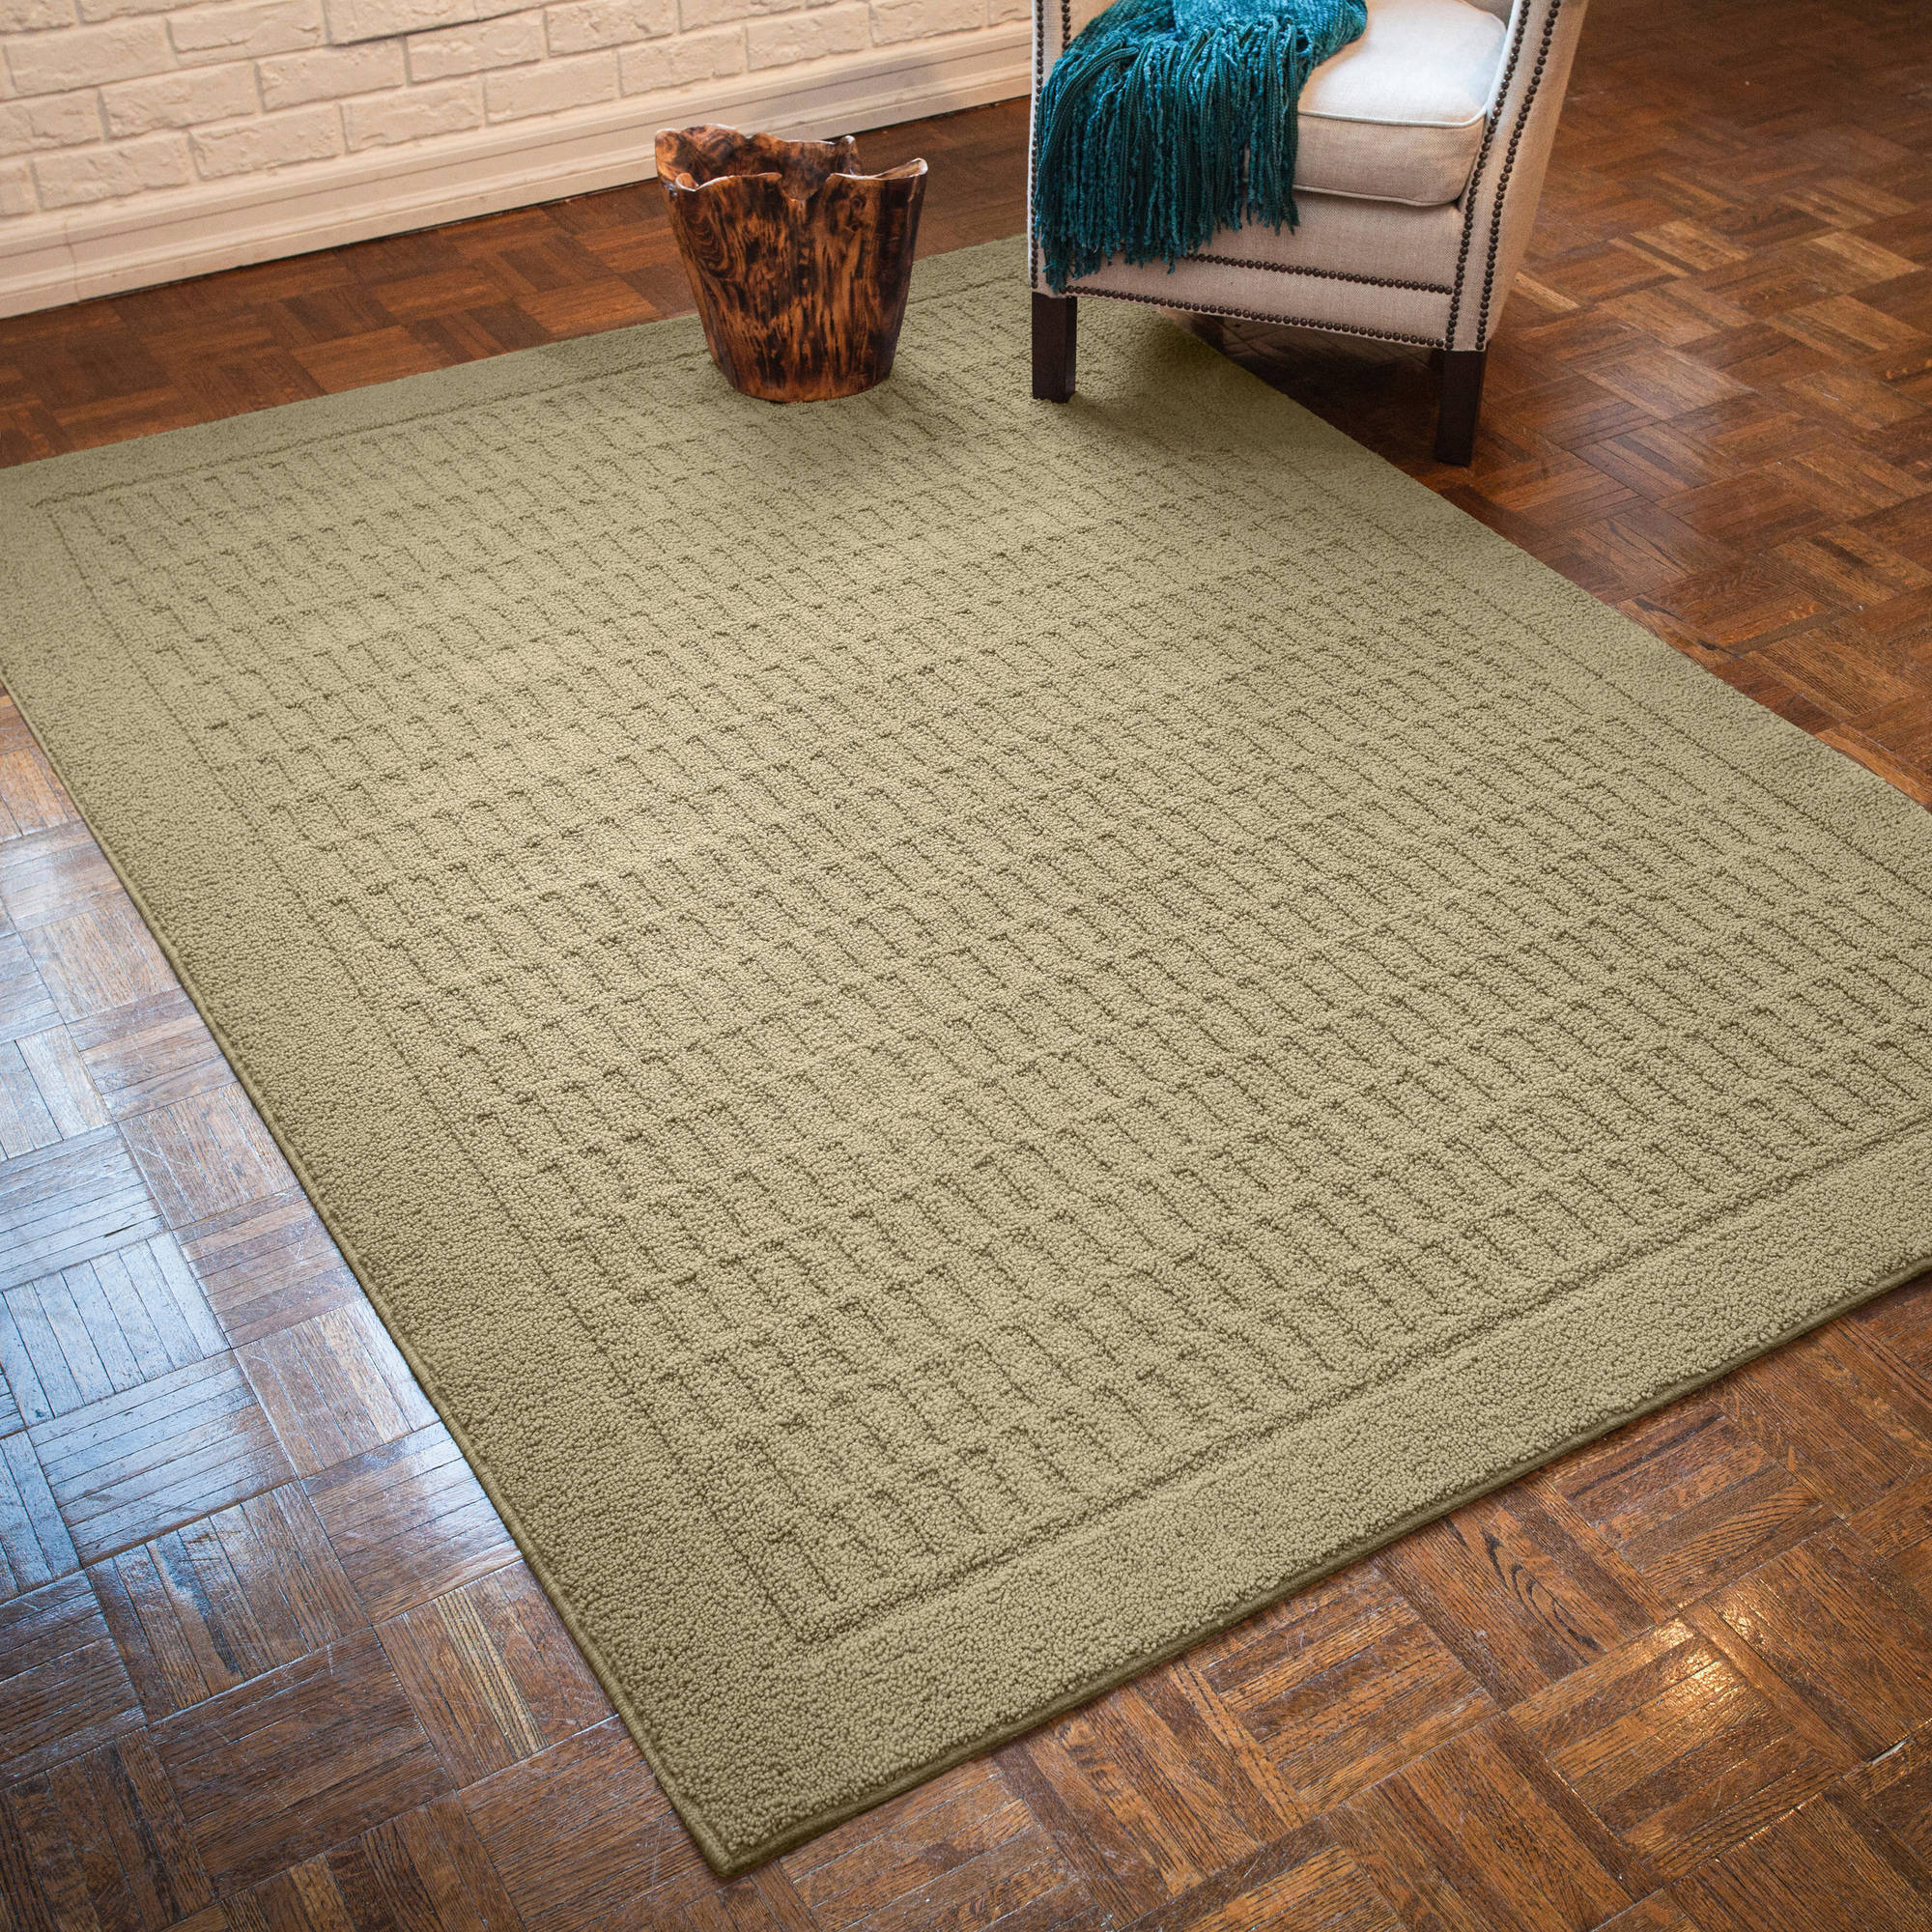 mainstays dylan nylon area rugs or runner collection - walmart